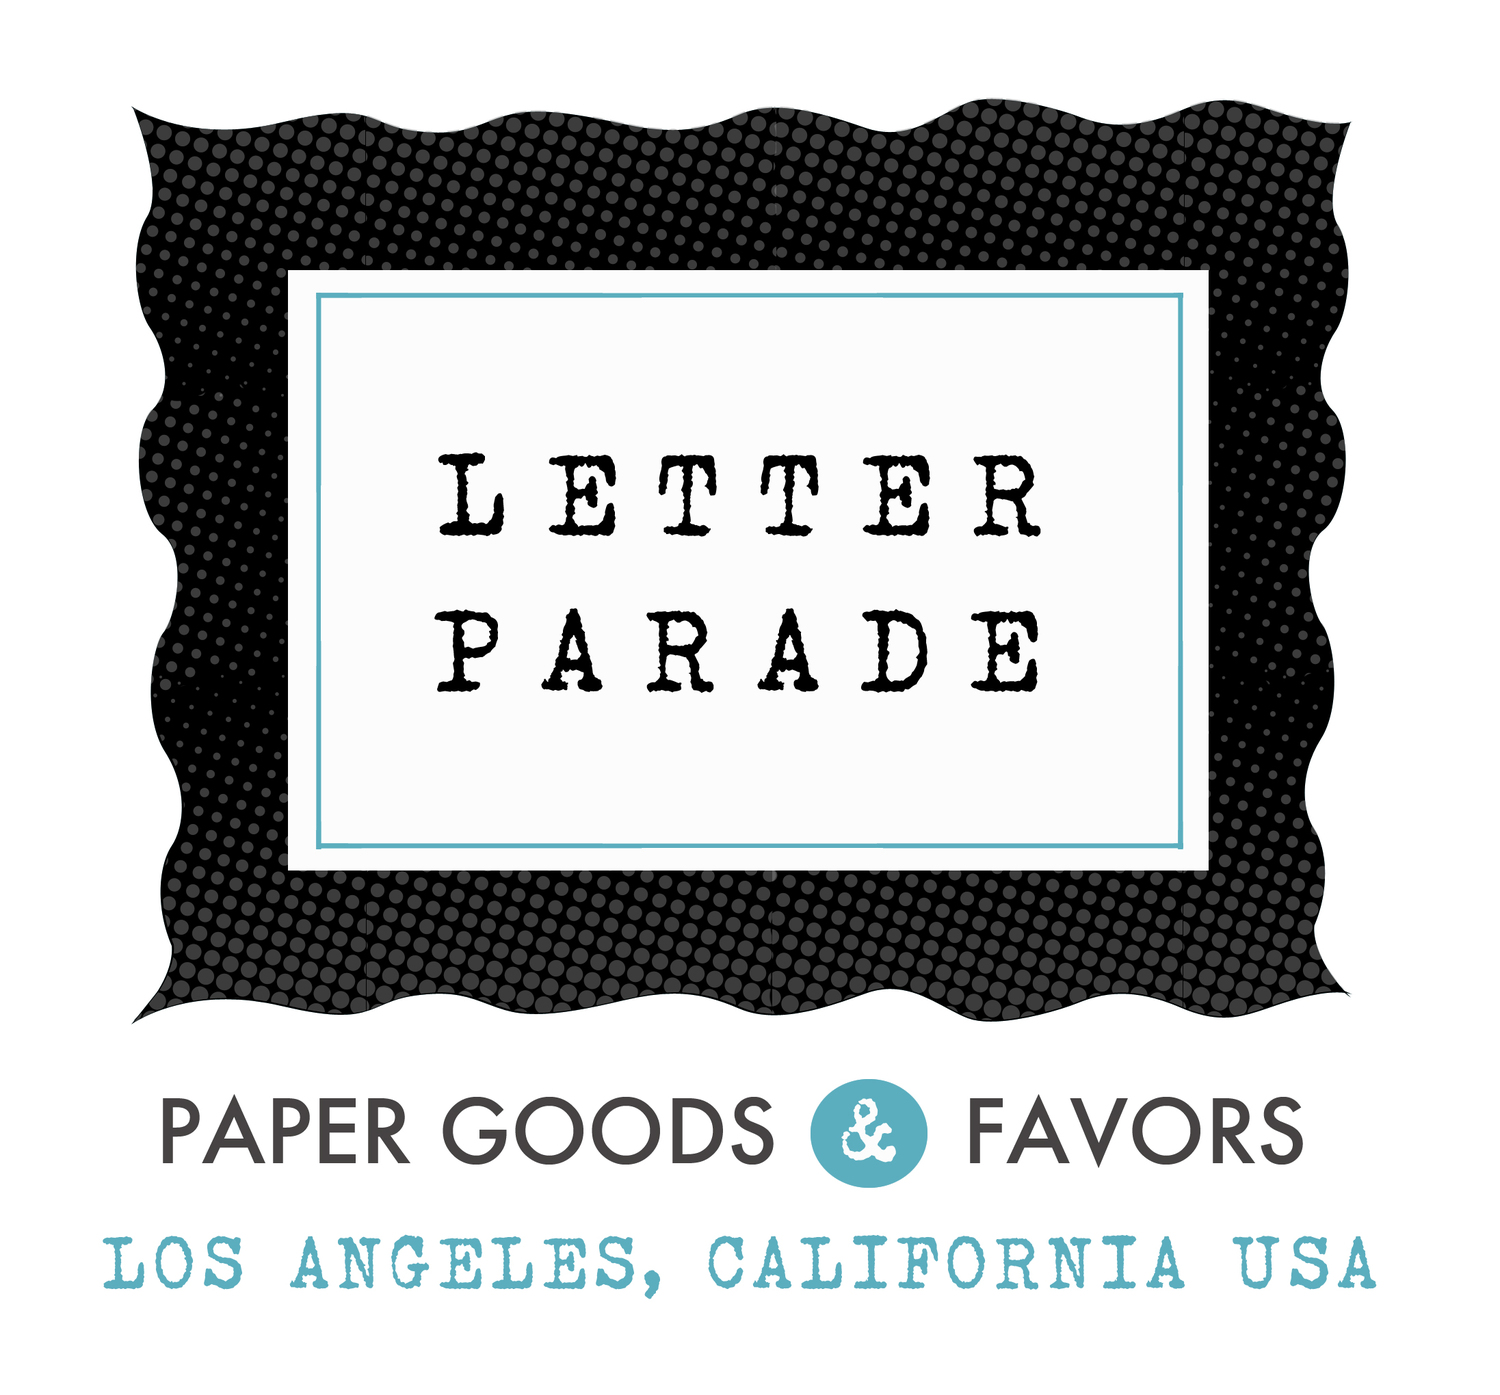 Letter Parade